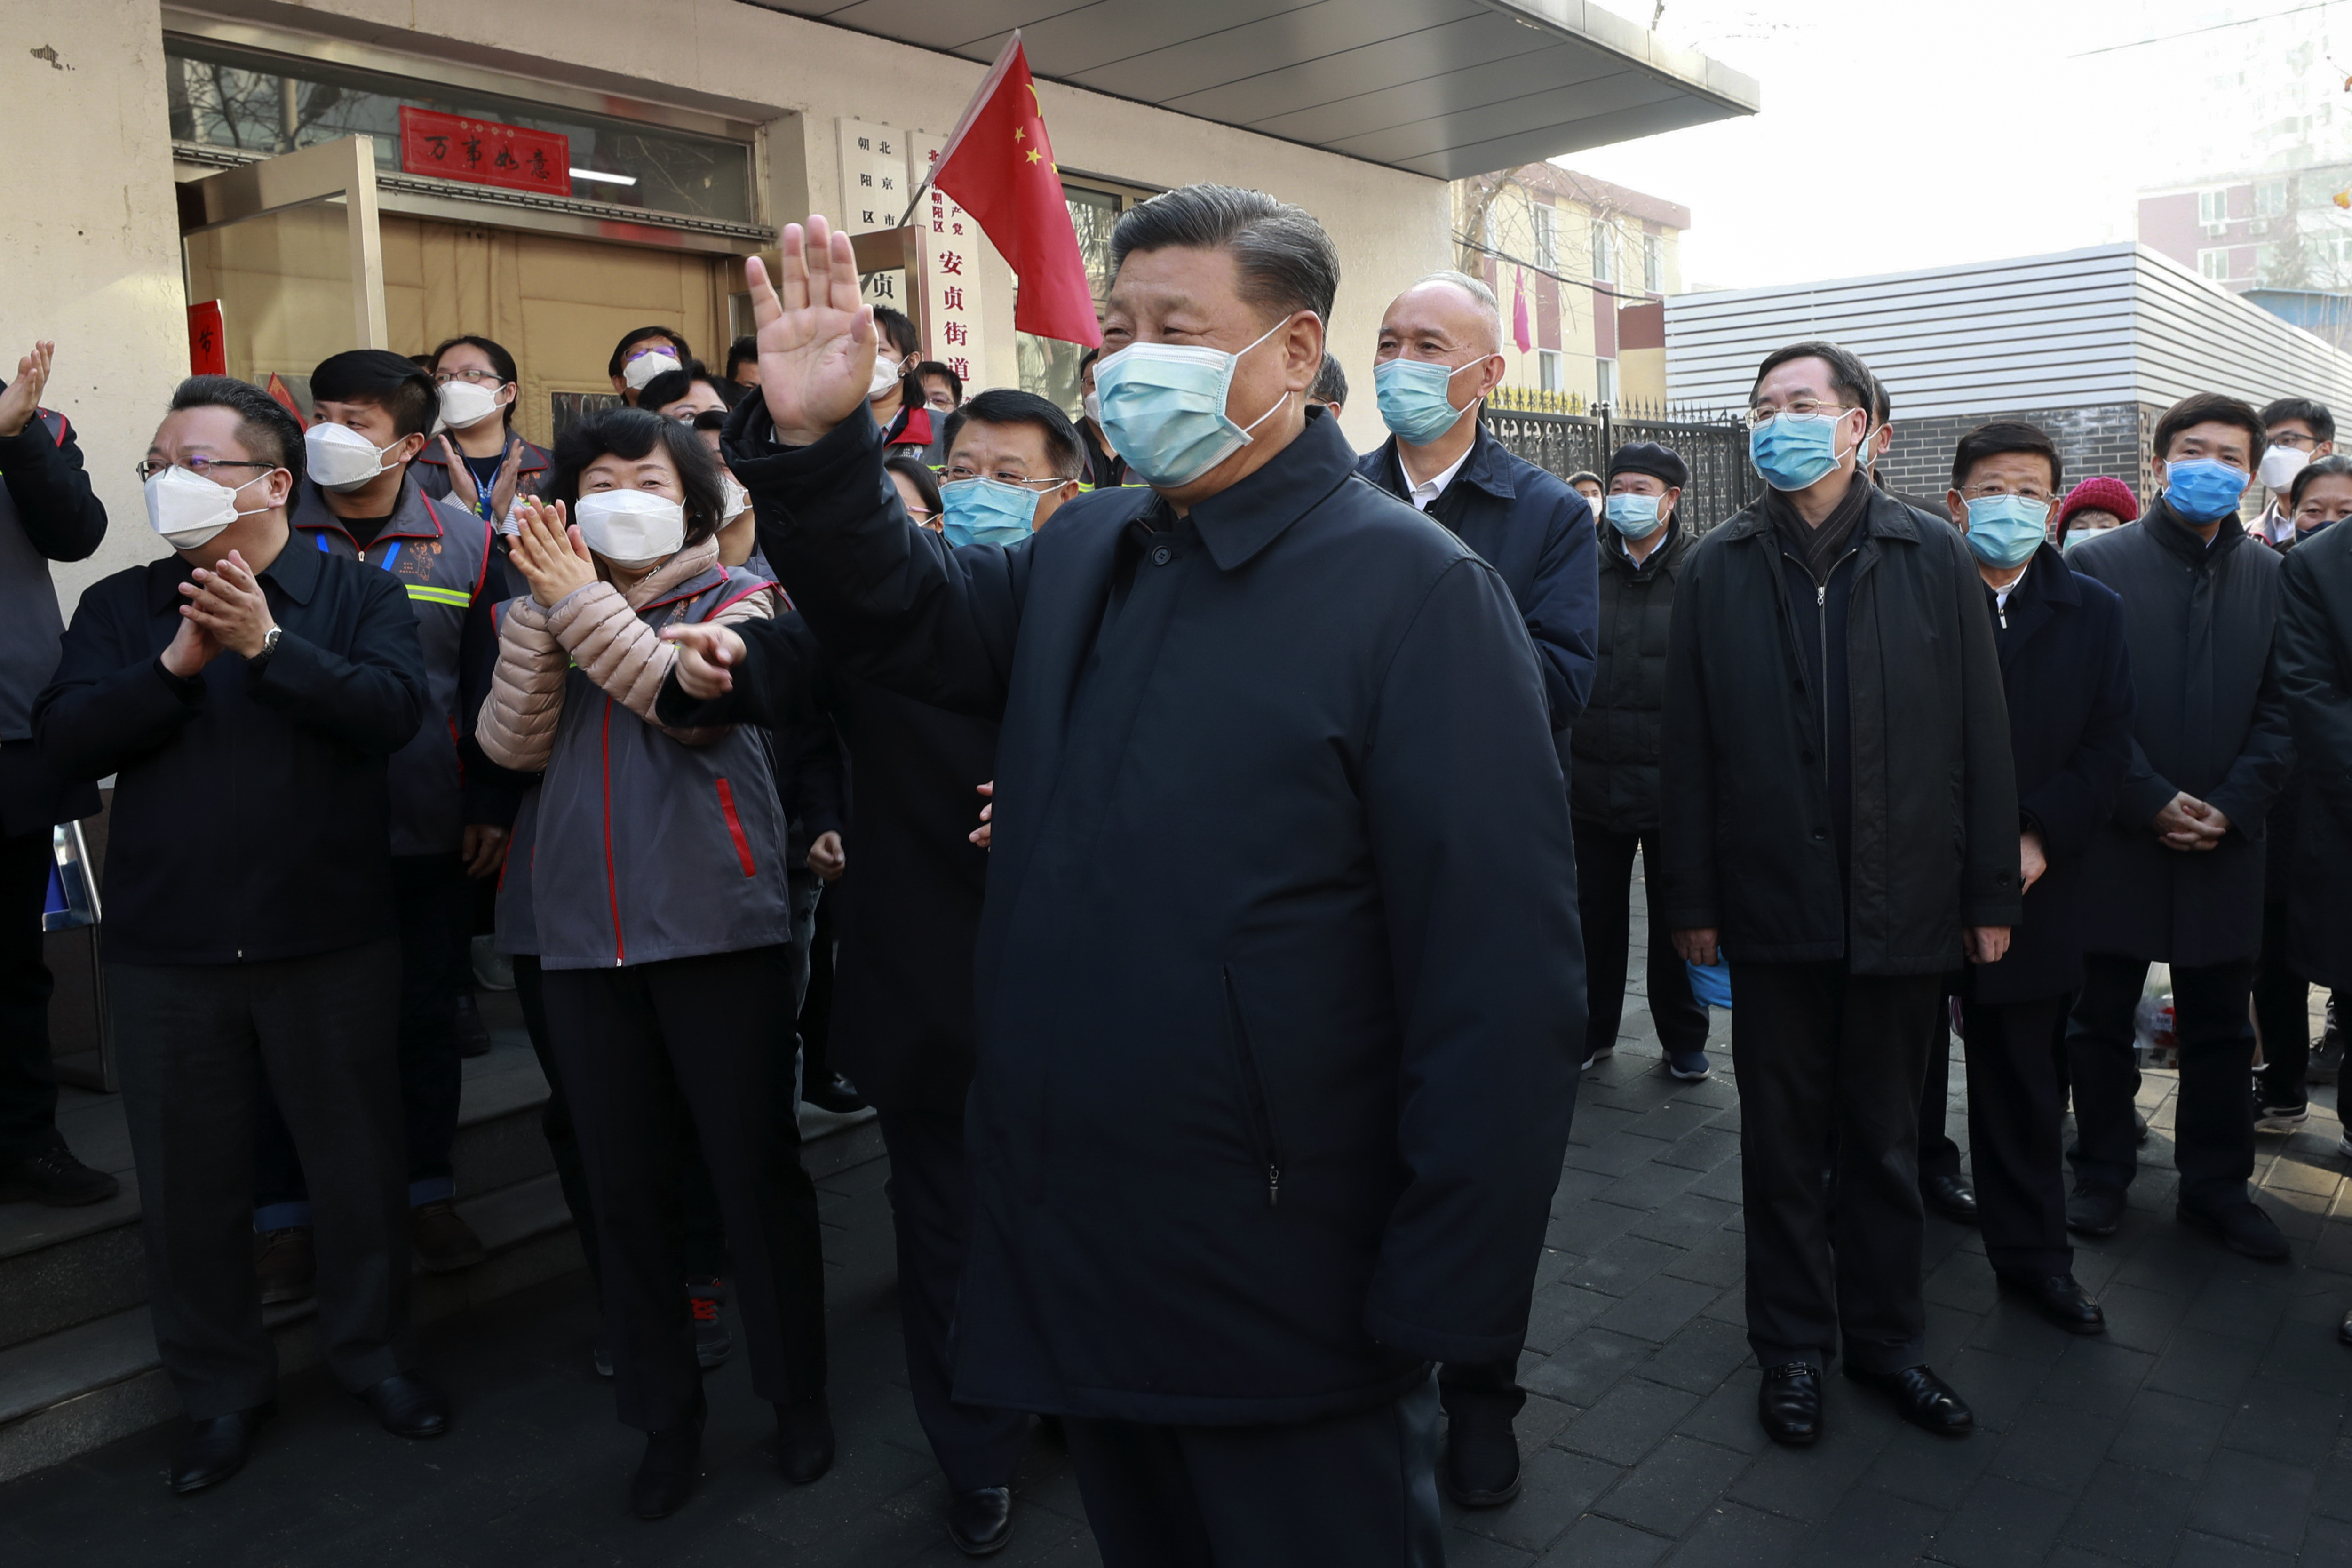 President Xi Jinping has made a rare public appearance at a hospital in Beijing.